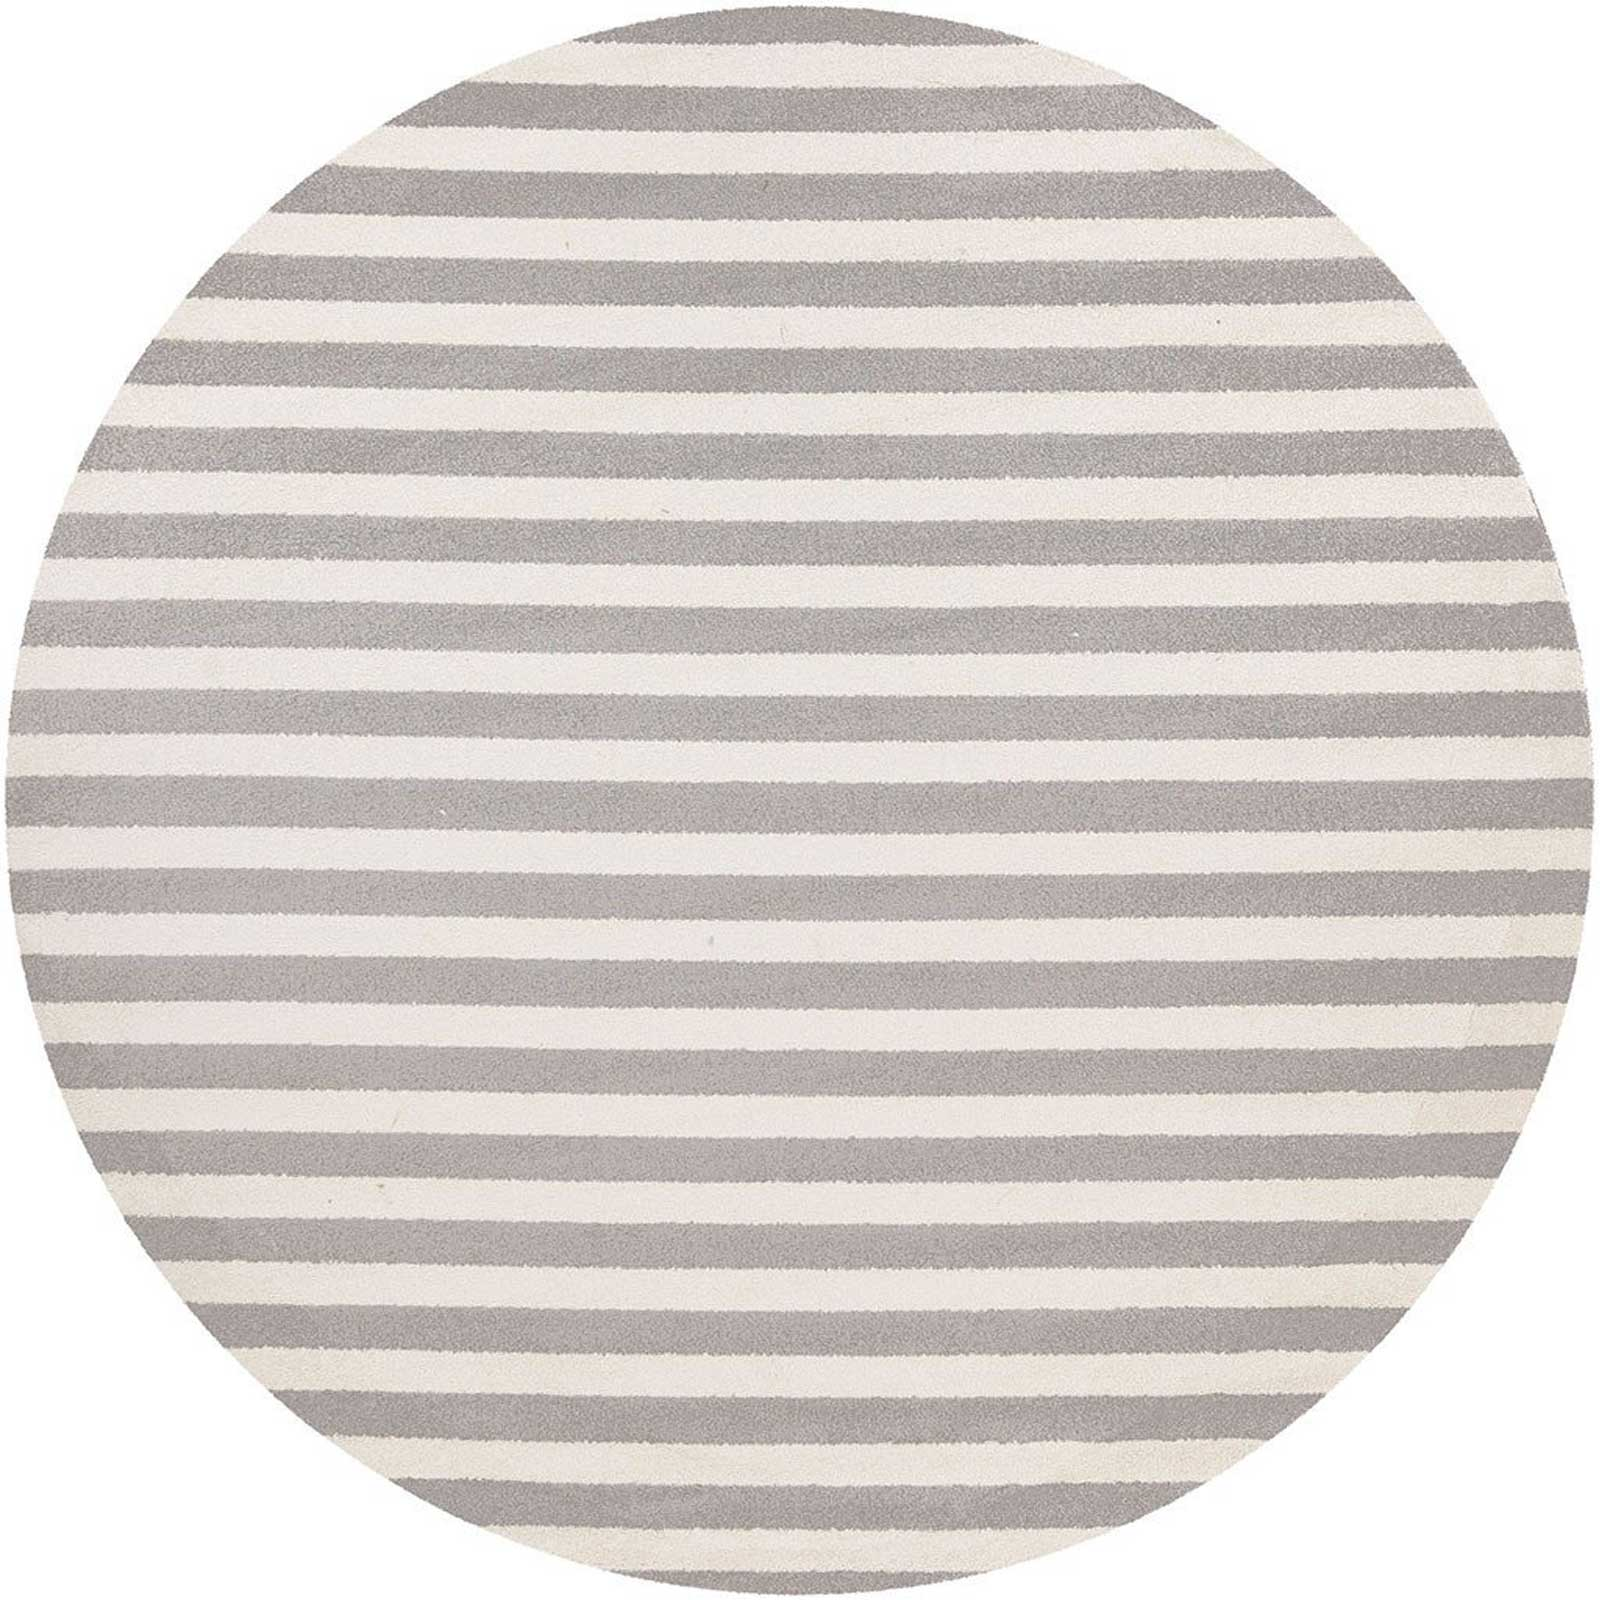 Horizon Lines Ivory/Charcoal Round Rug